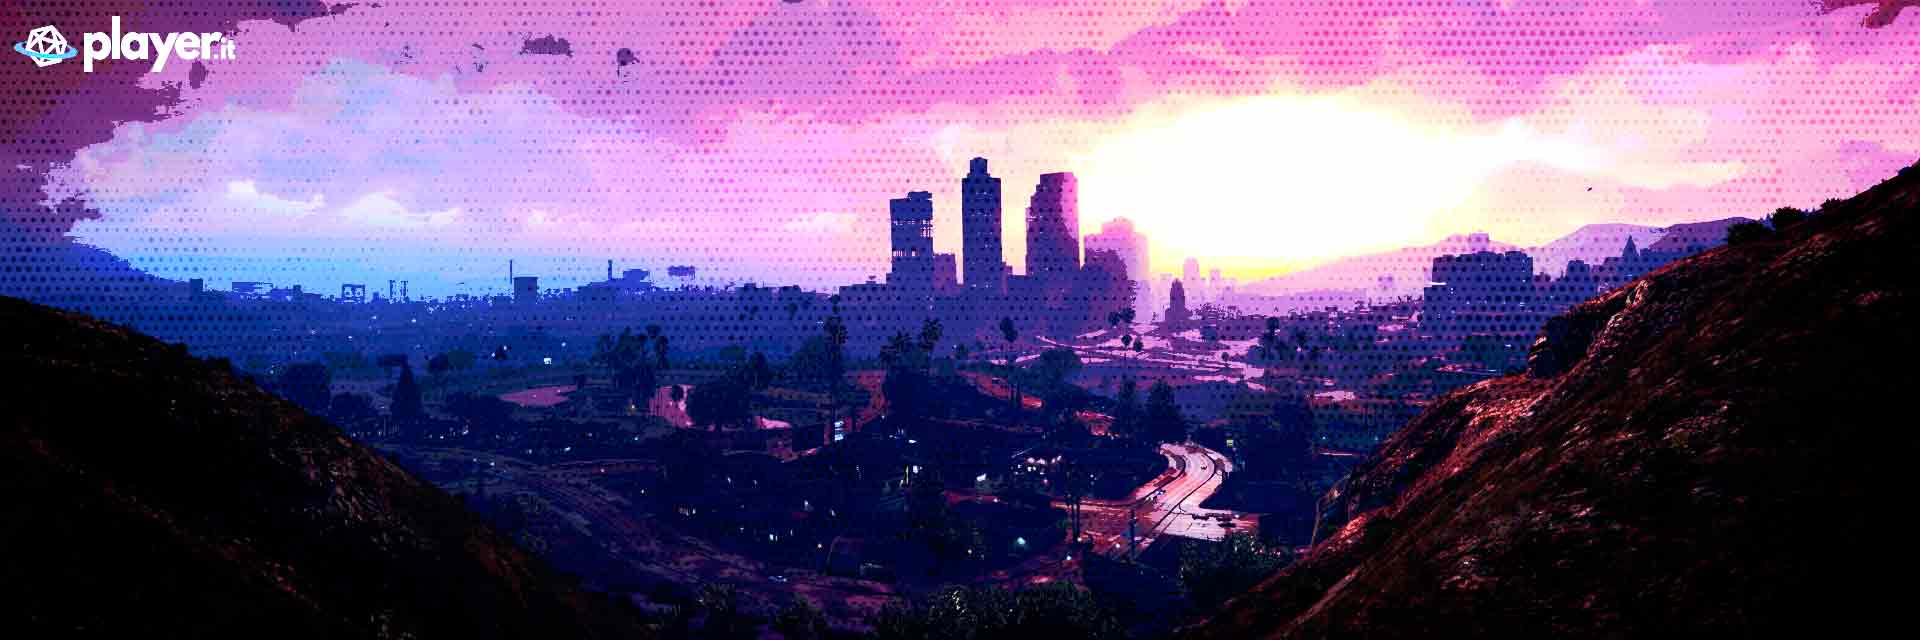 GTA V WALLPAPER IN HD